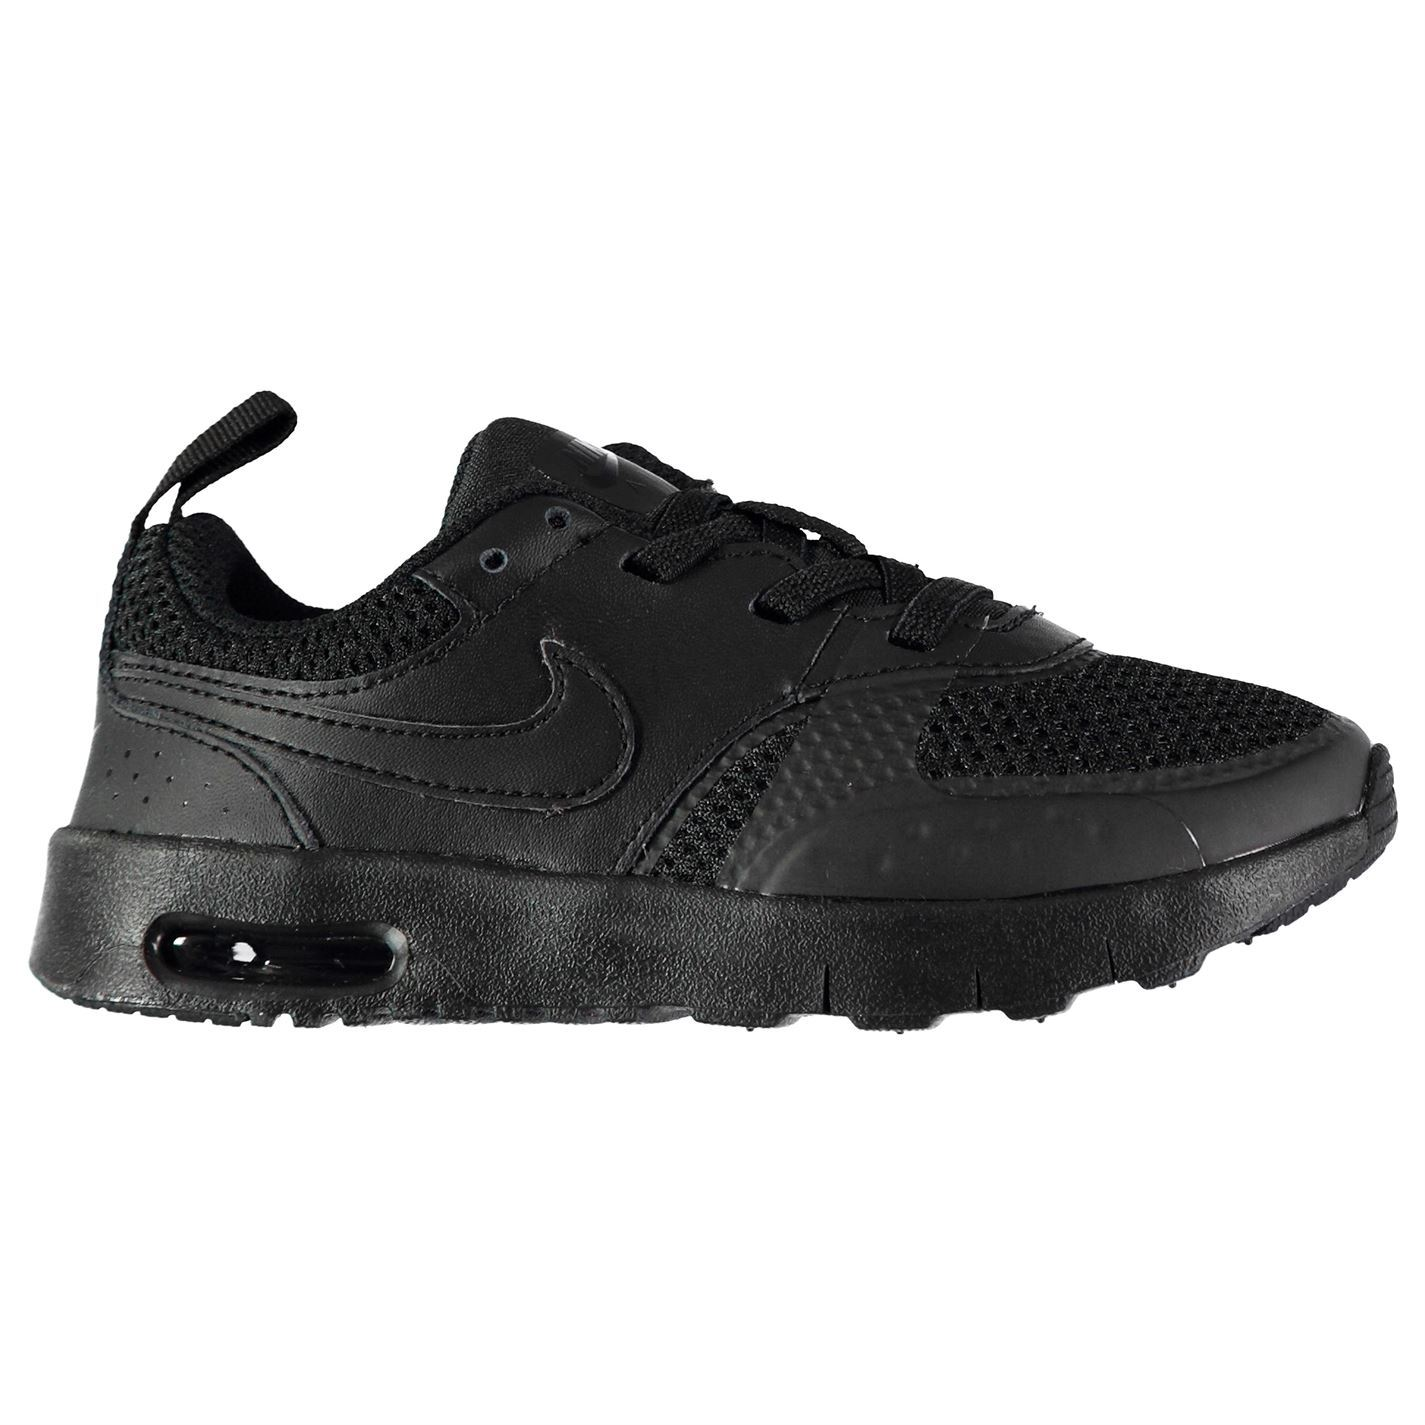 9c491b66598 ... Nike Air Max Vision Trainers Infant Boys Black Shoes Footwear ...